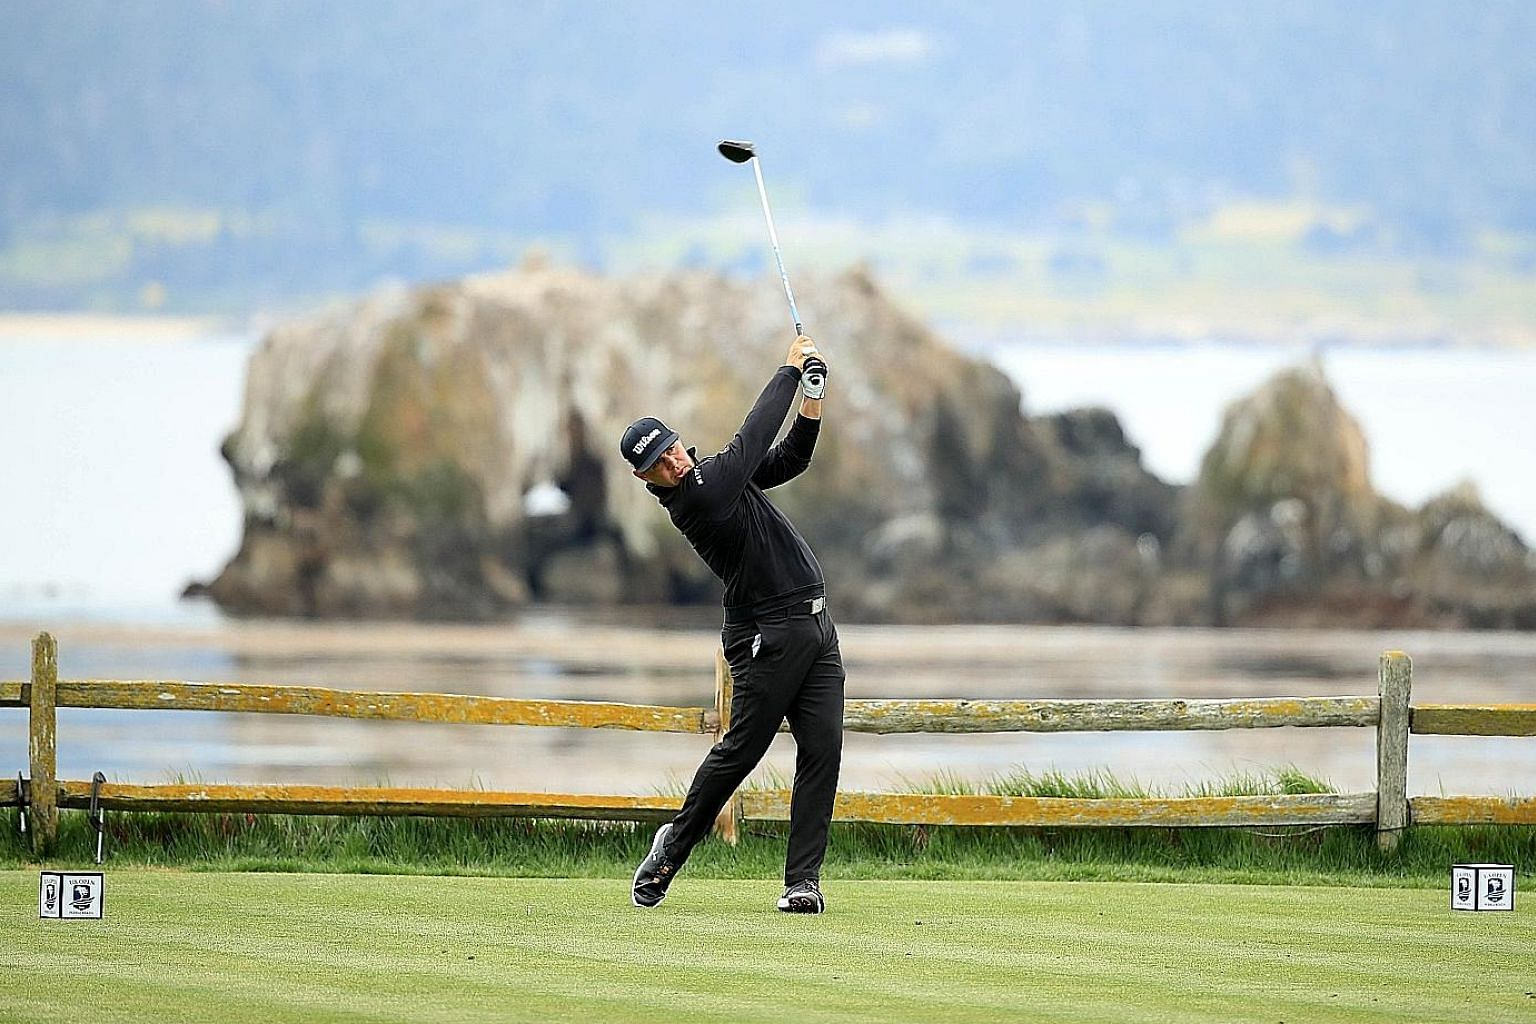 American Gary Woodland teeing off at the 18th hole during the second round of the US Open at Pebble Beach on Friday. He shot a record-equalling six-under 65 for a nine-under 133 total to take a two-shot lead into the third round.